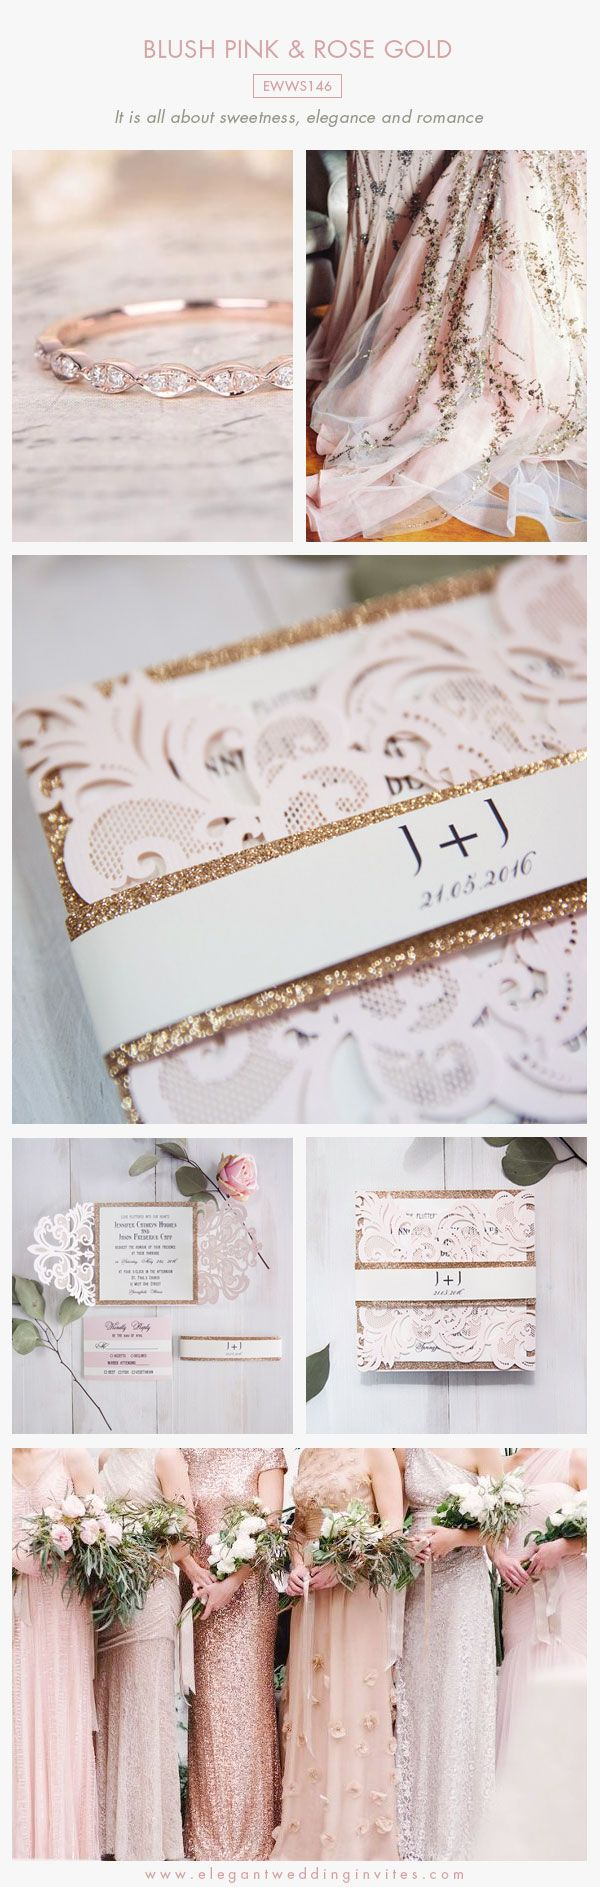 150 Best Blush Pink Weddings Images On Pinterest Color Scheme